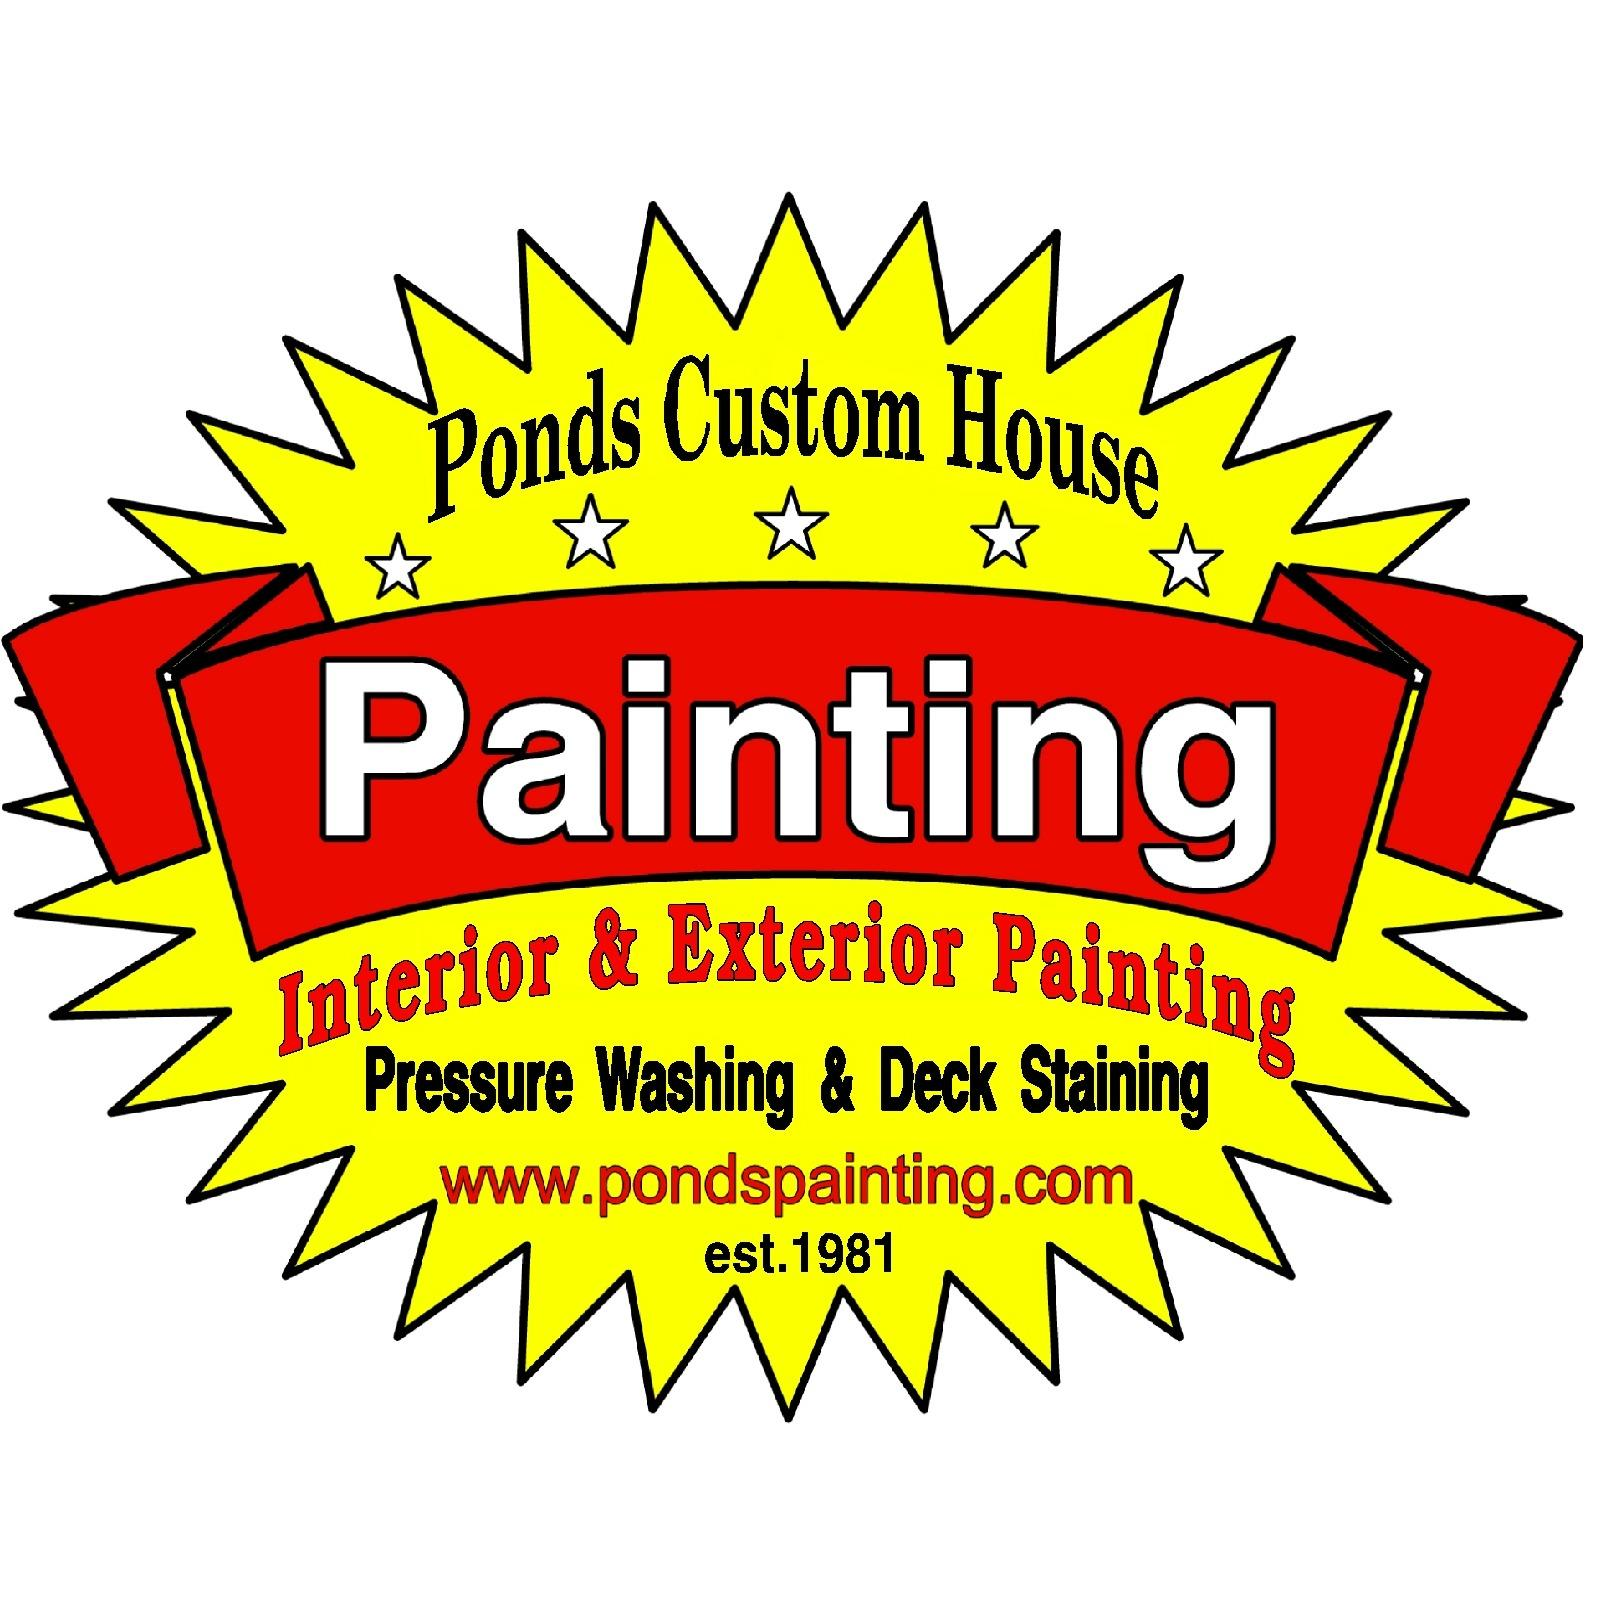 Interior and Exterior House Painting, including Pressure Washing and Deck Staining